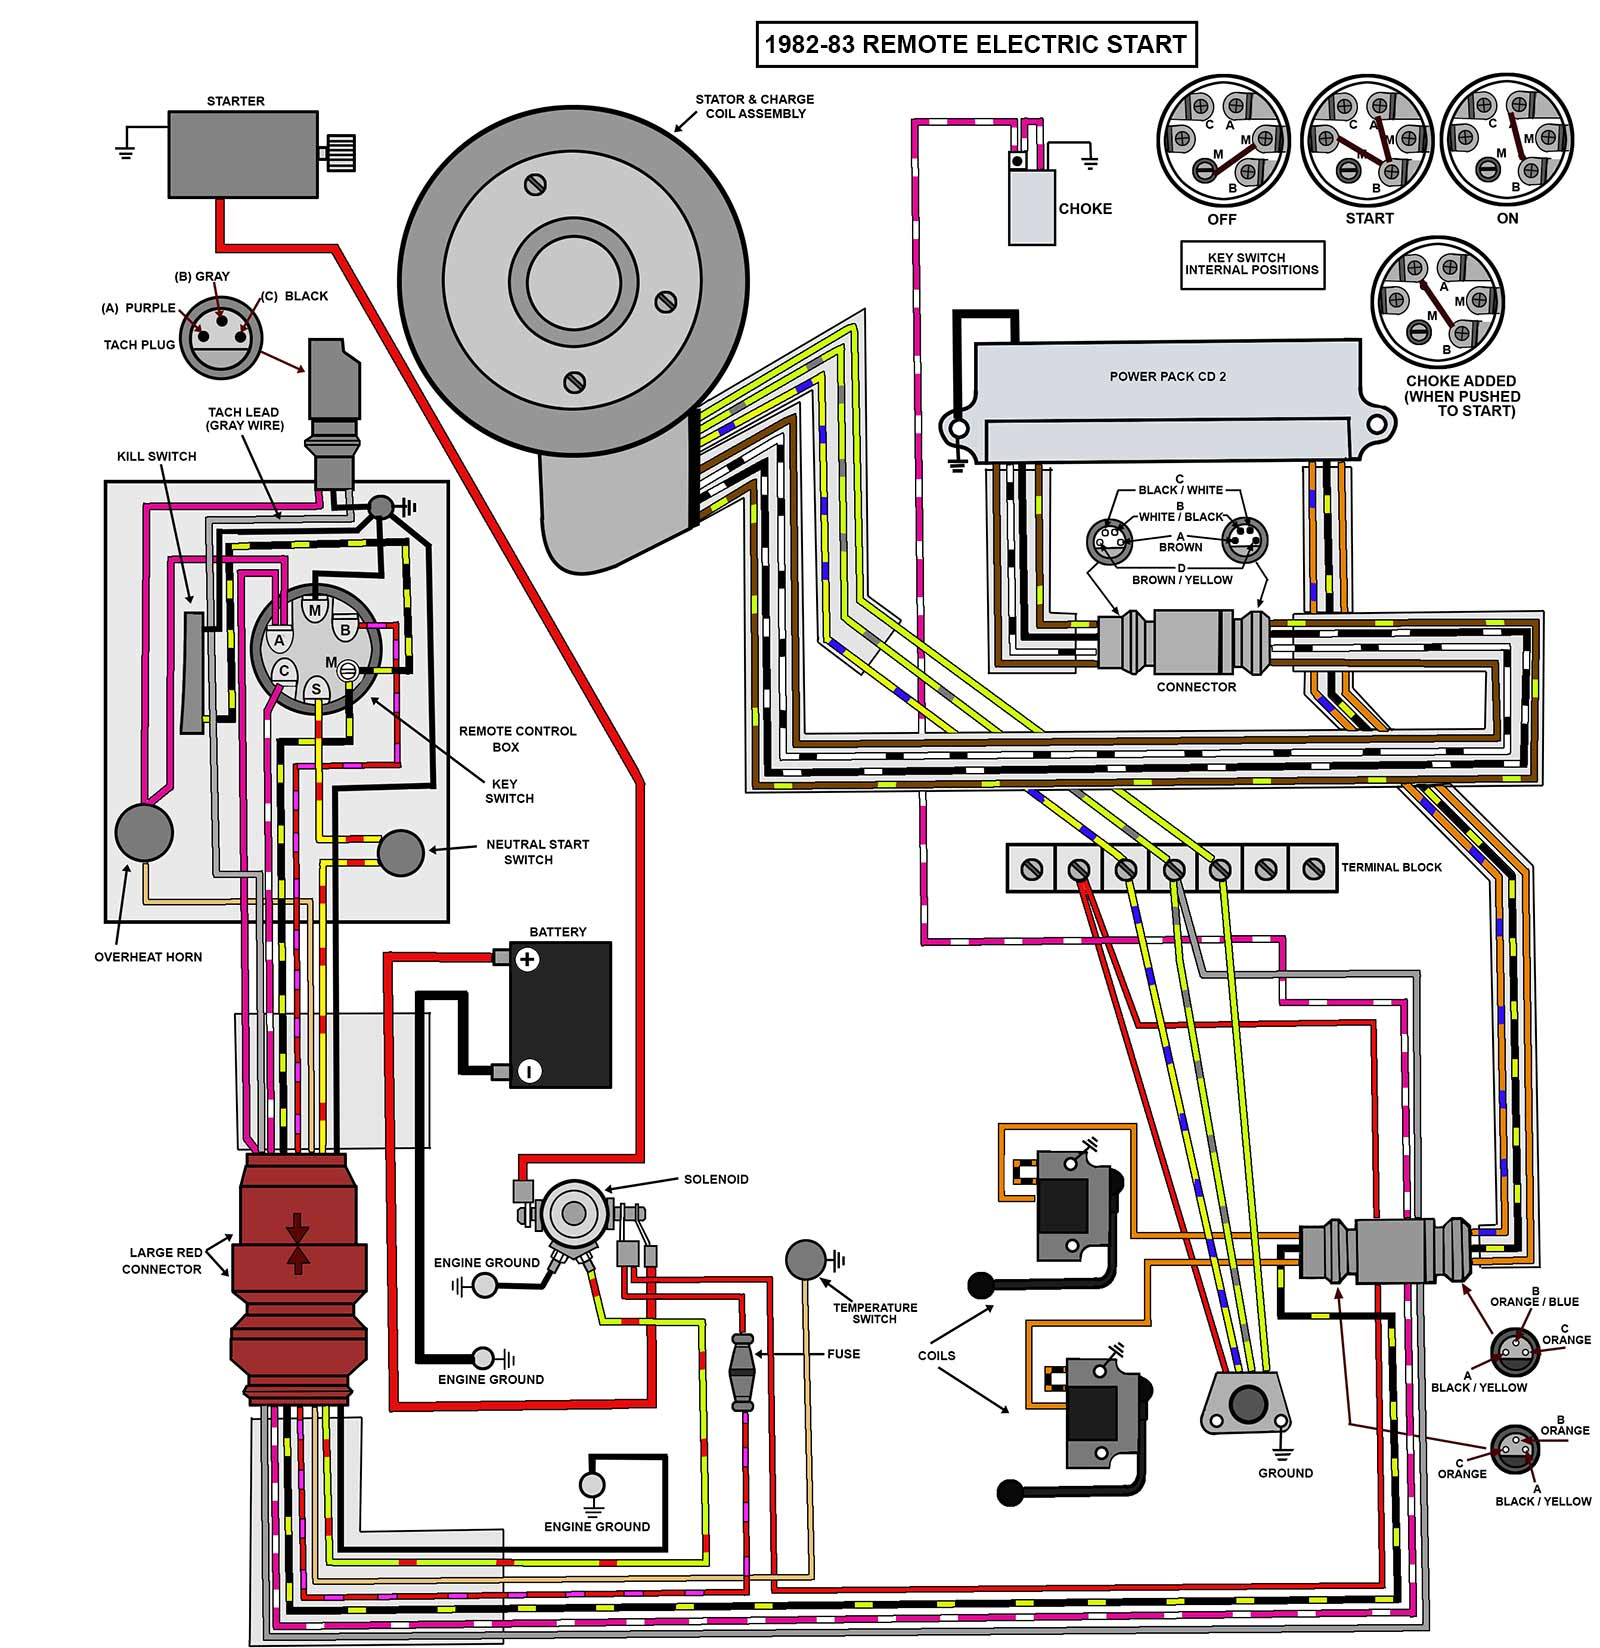 Omc Schematic Diagrams - Wire Management & Wiring Diagram on